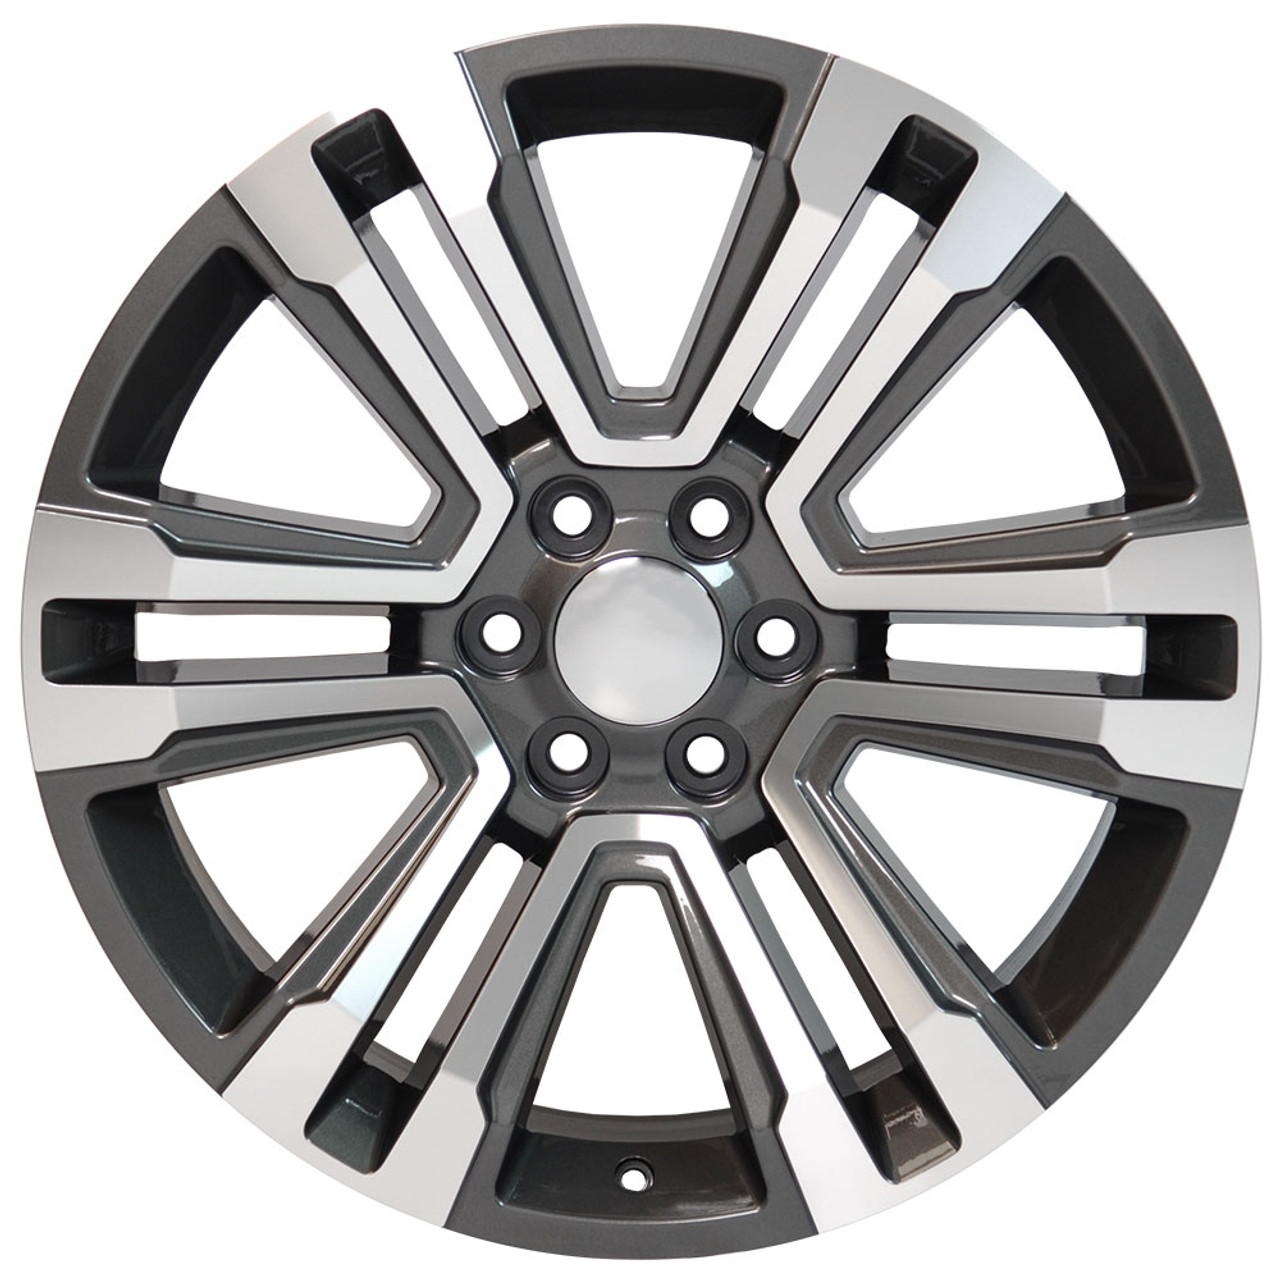 22 New 2018 Fits Gmc Denali Wheels Chevy 1500 Machined Silver Face